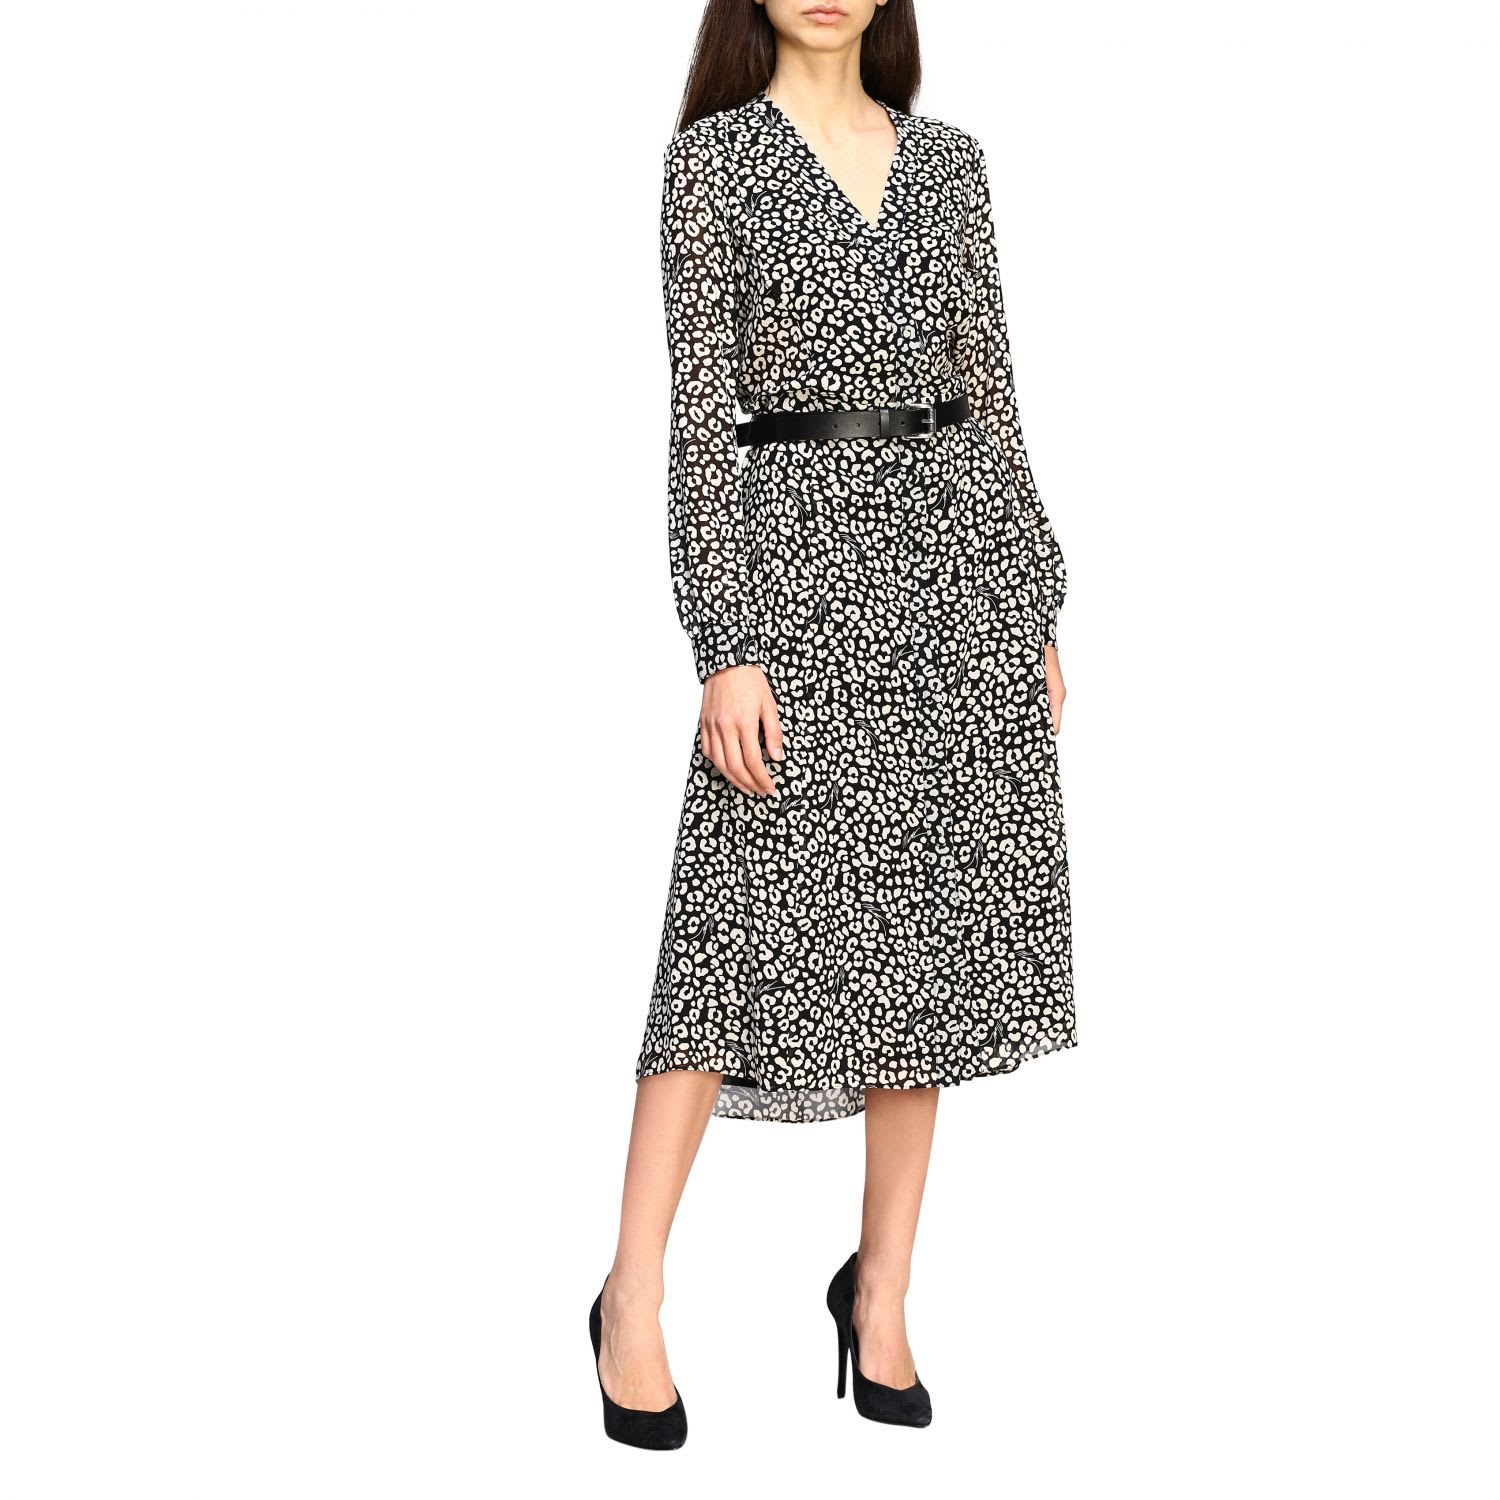 Buy Michael Michael Kors Dress Michael Michael Kors Dress With Floral Print And Belt online, shop MICHAEL Michael Kors with free shipping